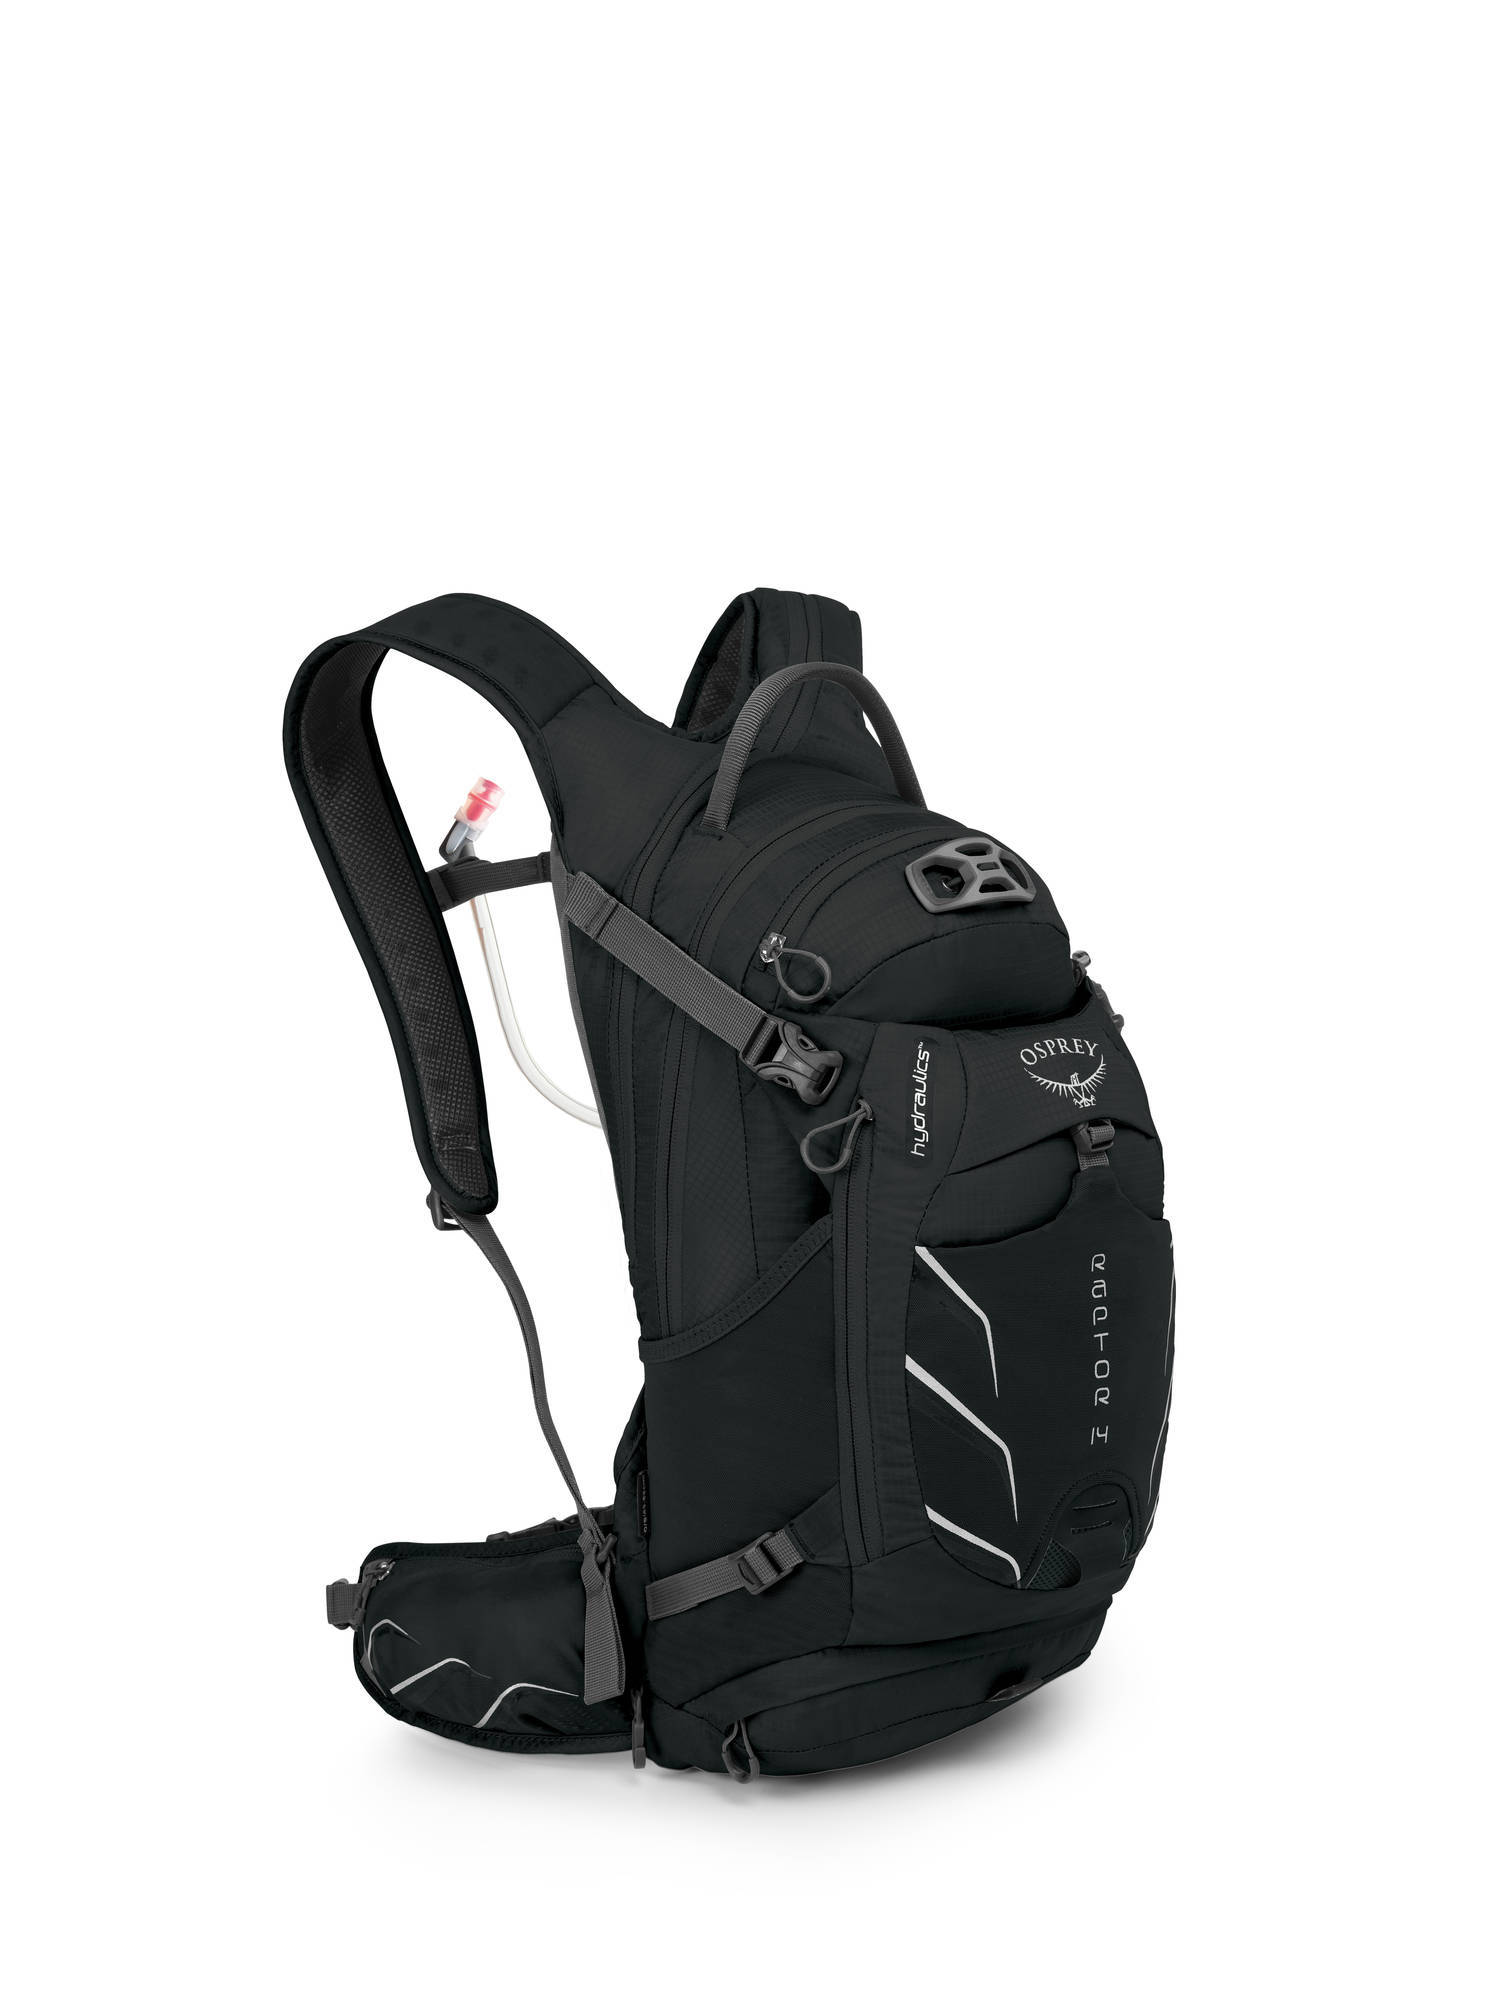 Велорюкзаки Рюкзак Osprey Raptor 14 Black Raptor_14_Side_Black_web.jpg